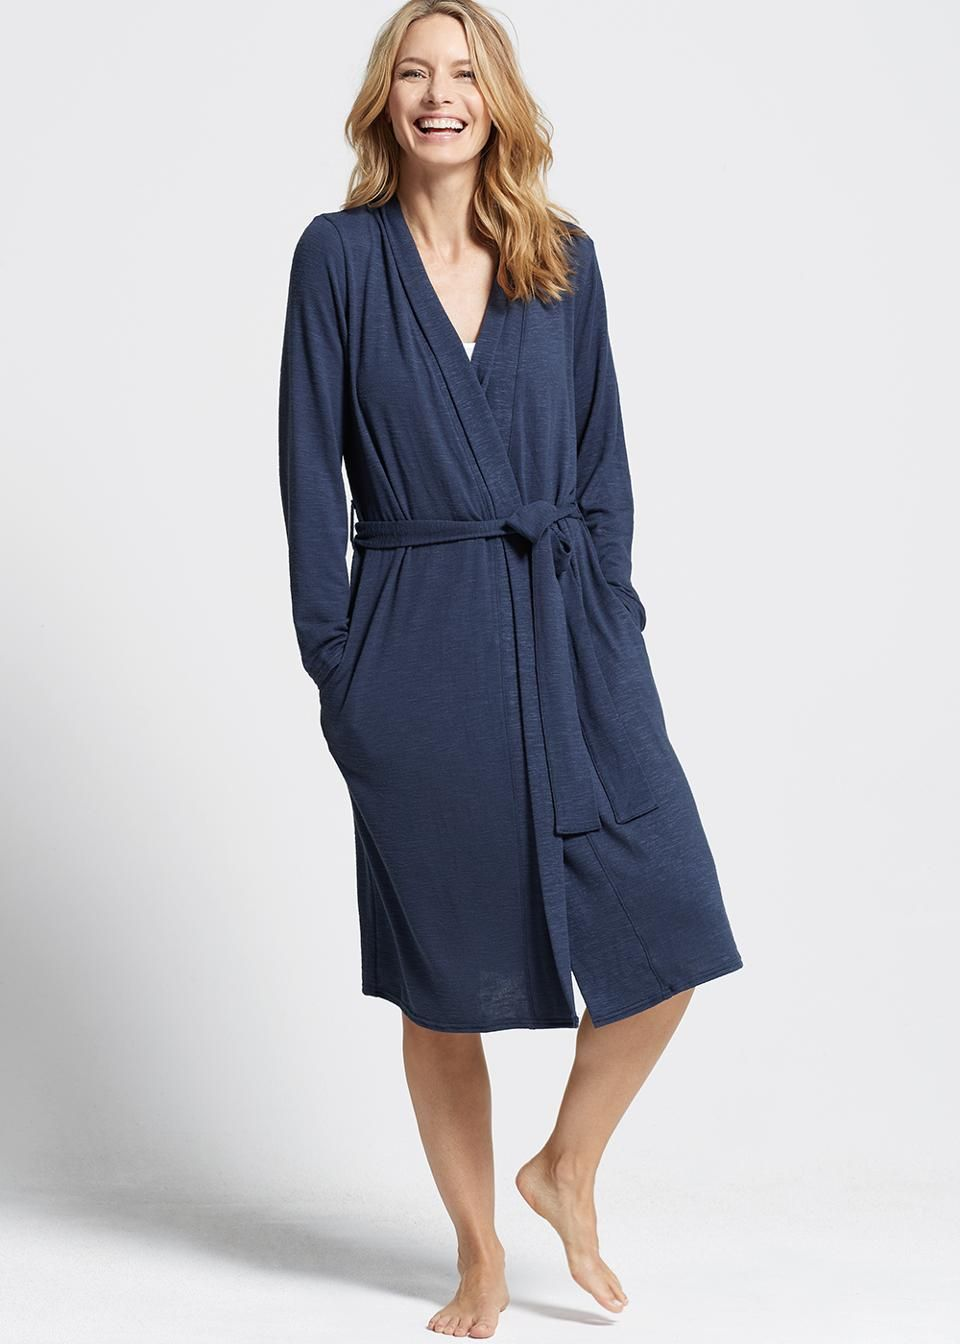 Forbes Holiday Gift Guide 2019: The Best Loungewear for Women